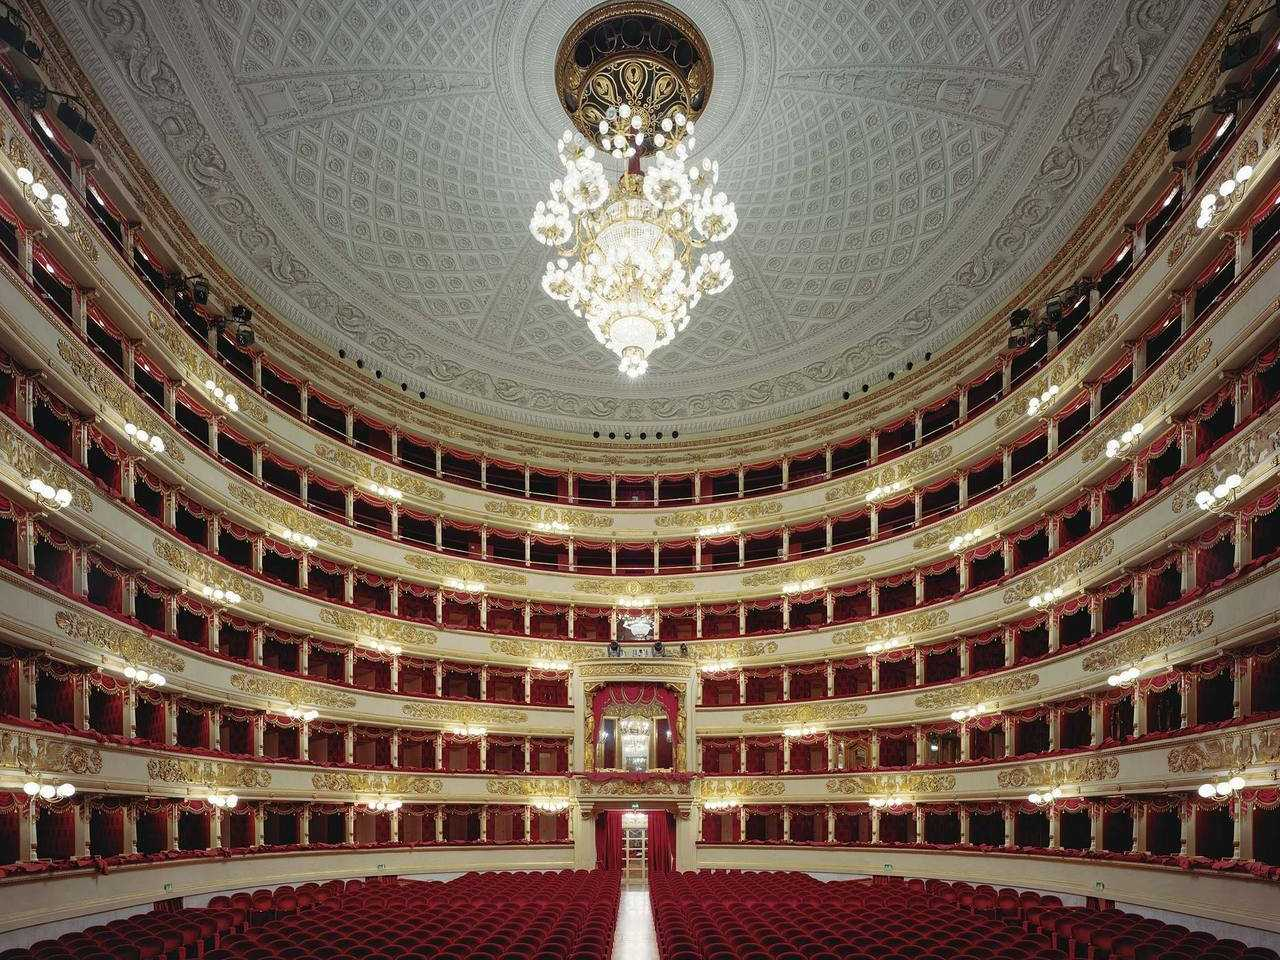 Watch a performance at La Scala, Milan's world-renowned opera house.